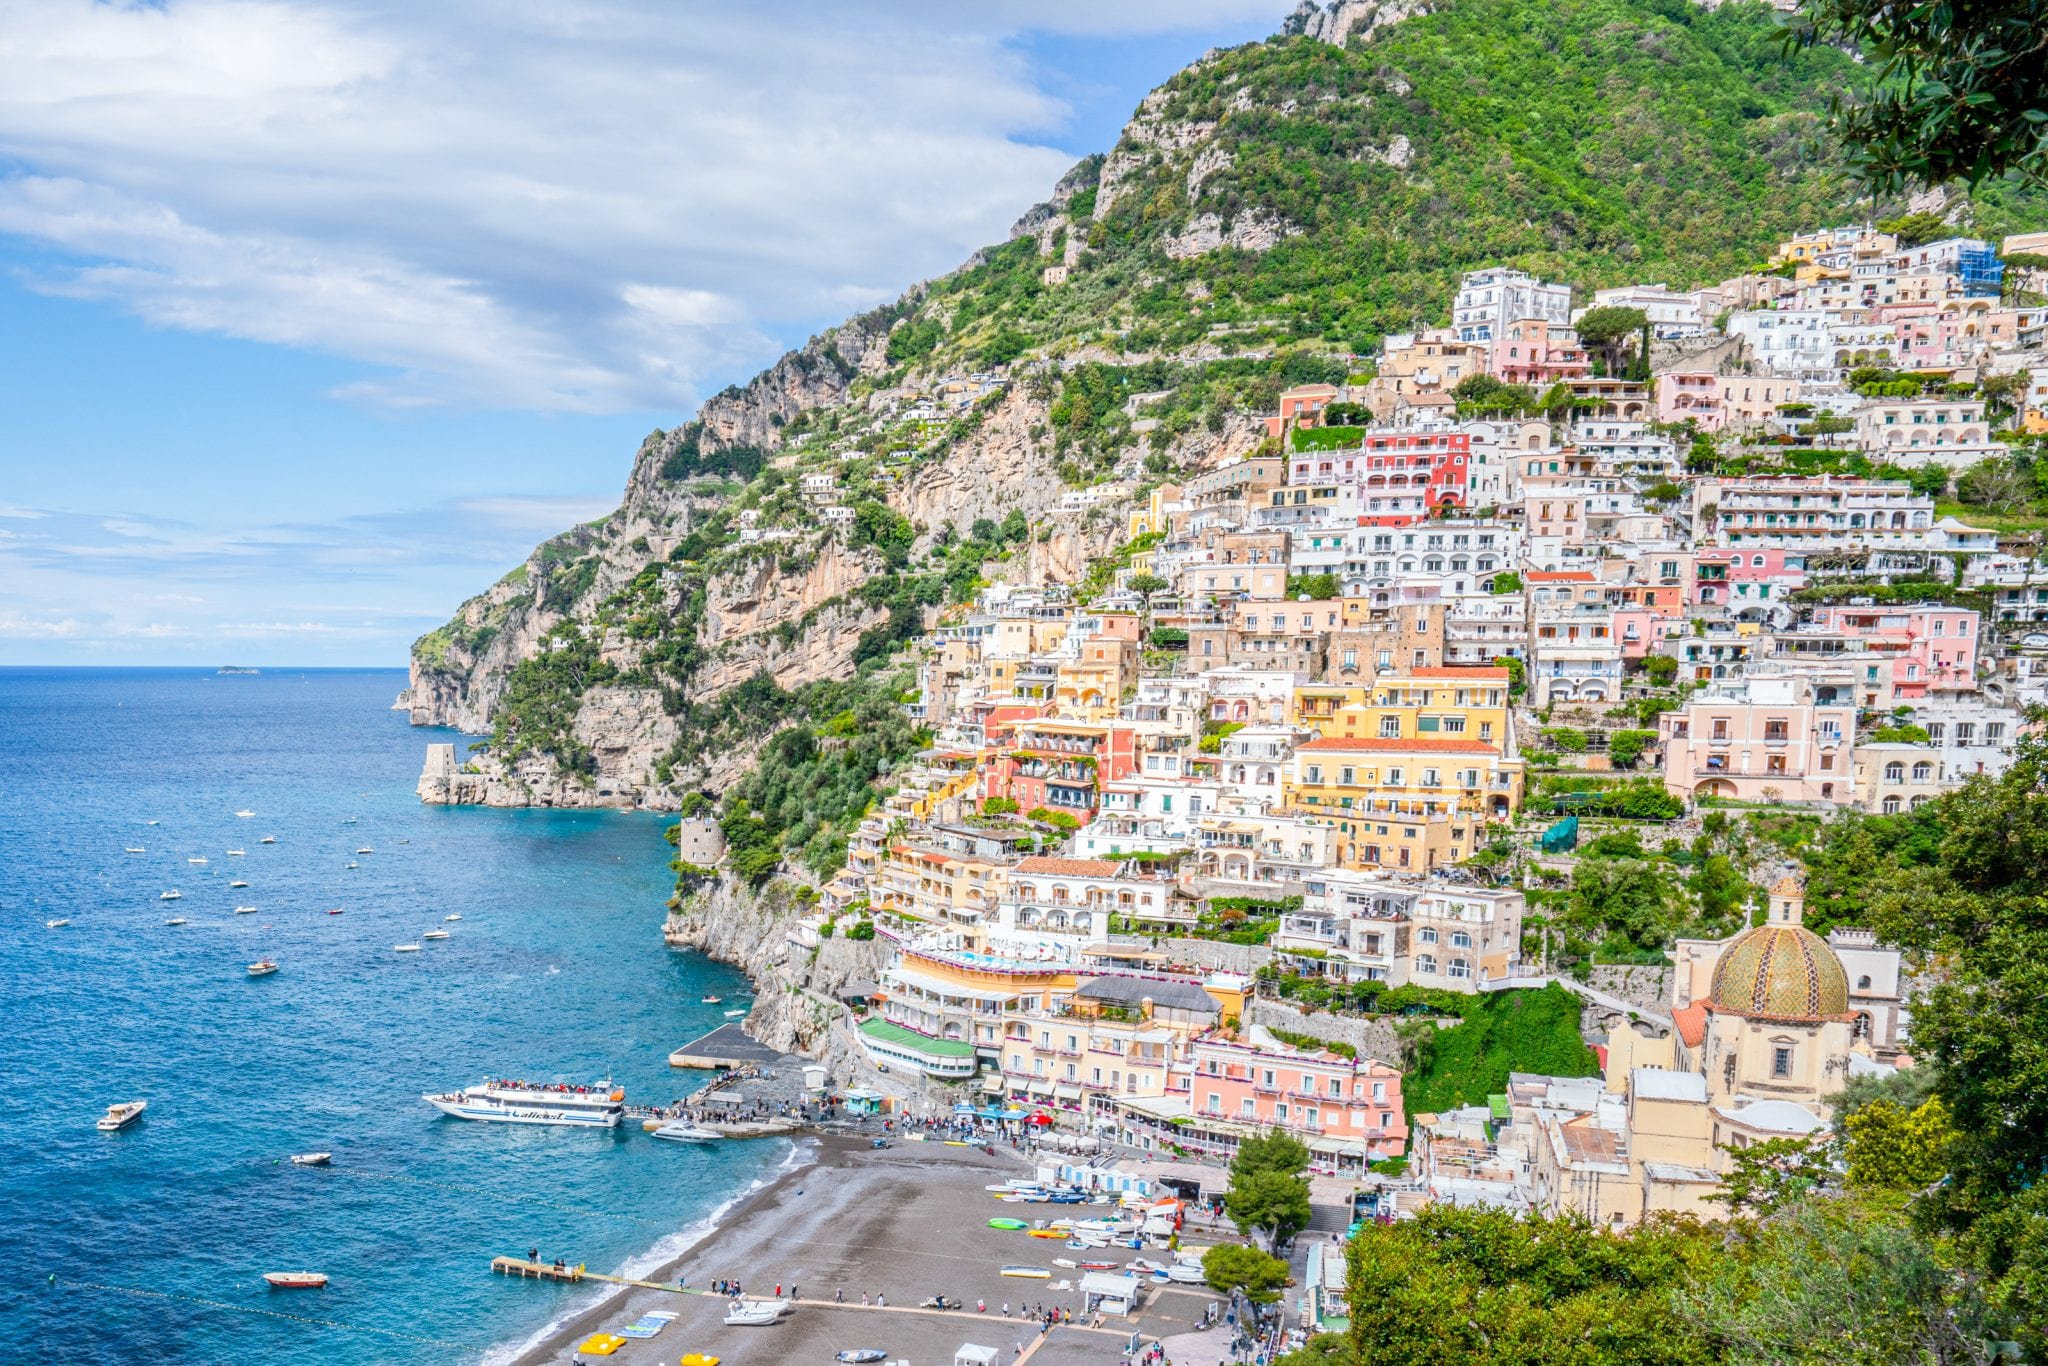 Photo of Positano from above. The town and cliff is on the right, beach at center bottom, and sea with boats to the left. Recommended stop on a 3 day Amalfi Coast itinerary.